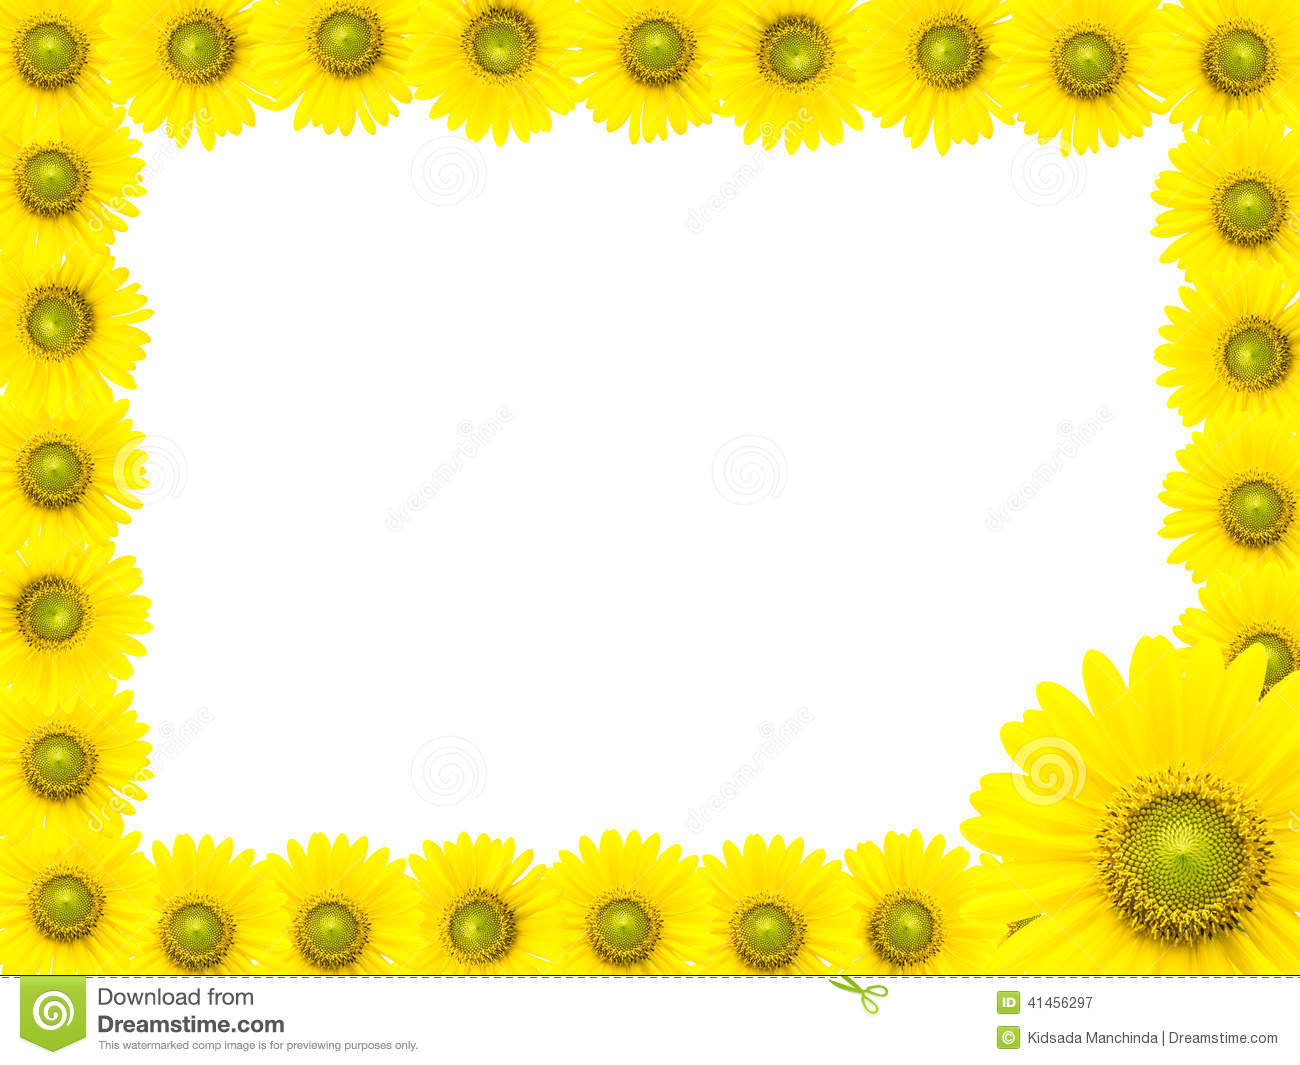 Contemporary Sunflower Picture Frames Gallery - Framed Art Ideas ...